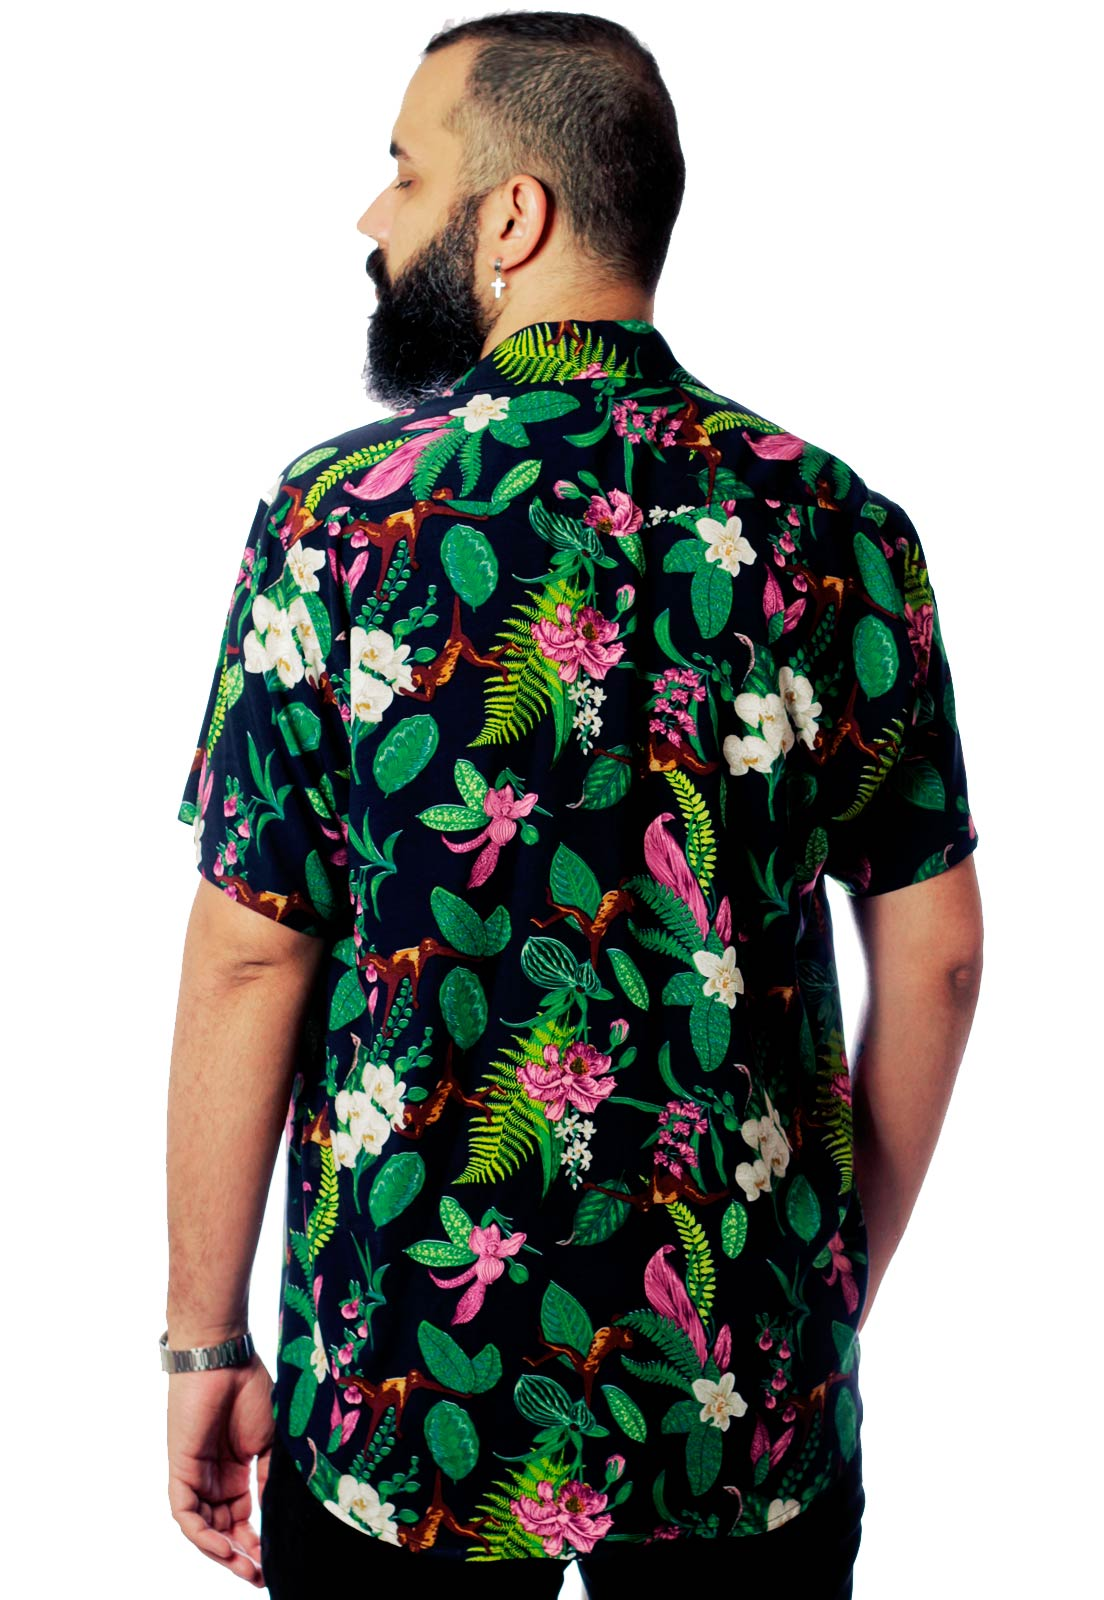 Camisa Estampada Tropical ElephunK Unissex Monkey Business Verde